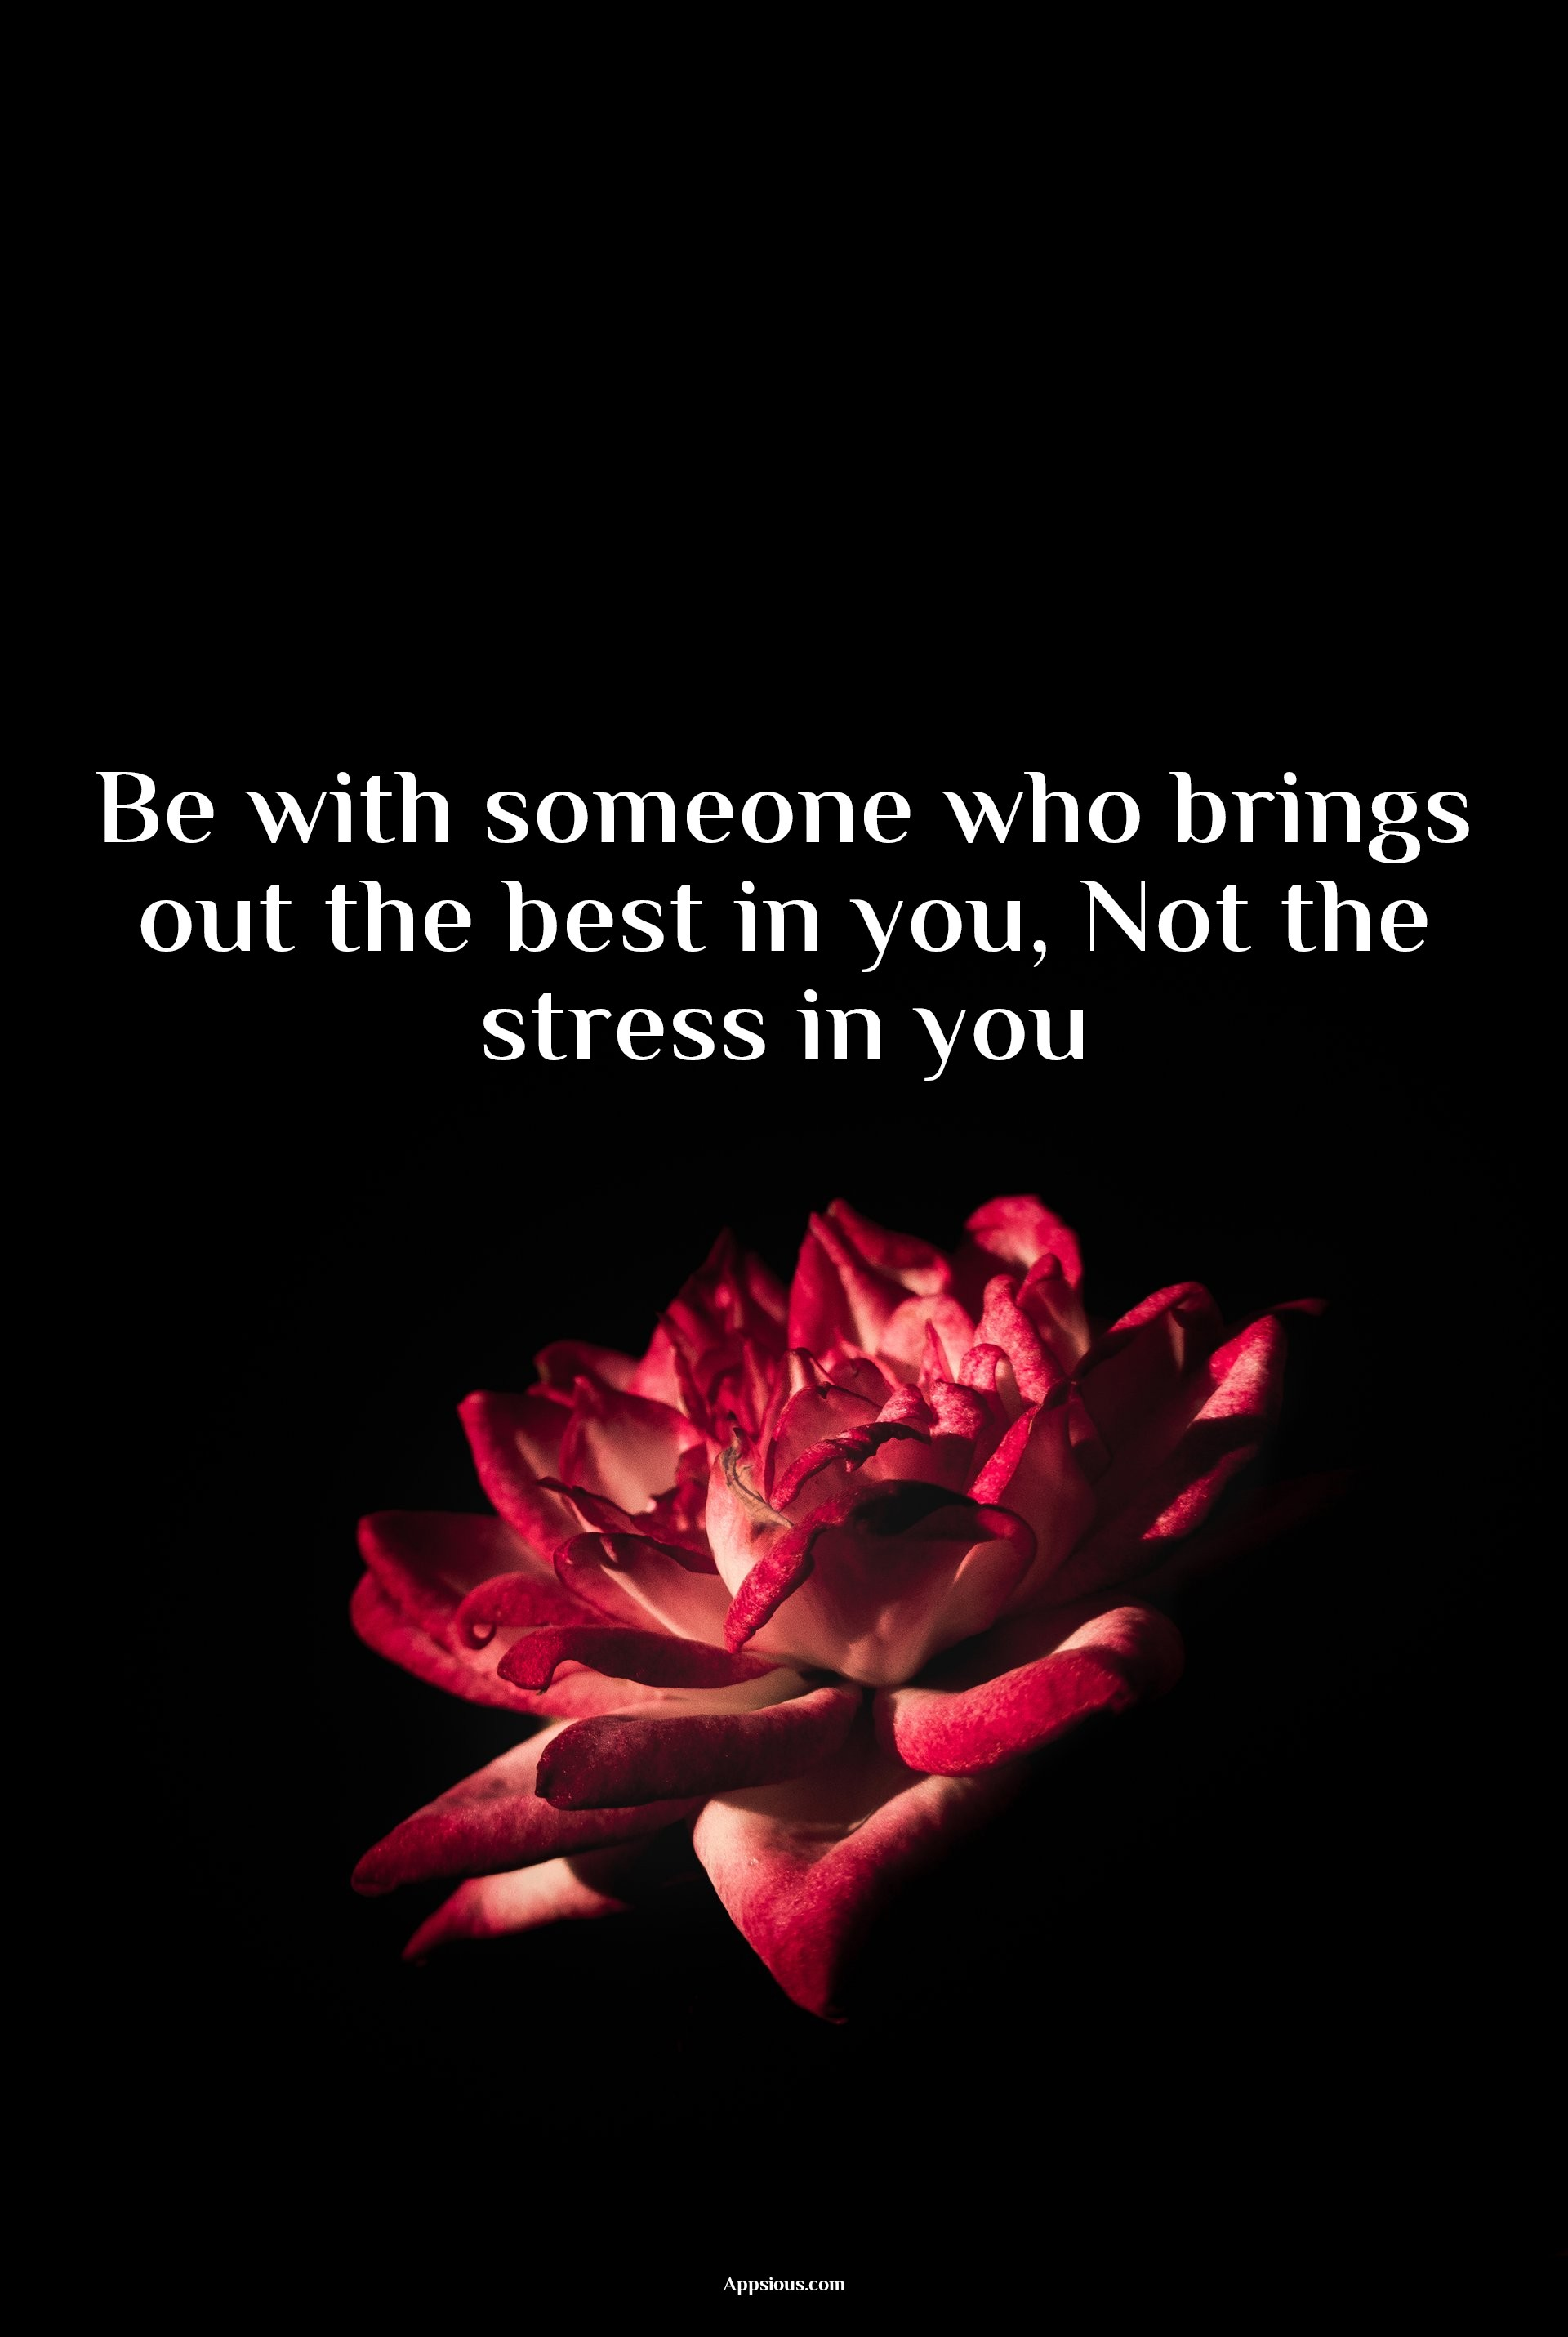 Be with someone who brings out the best in you, Not the stress in you